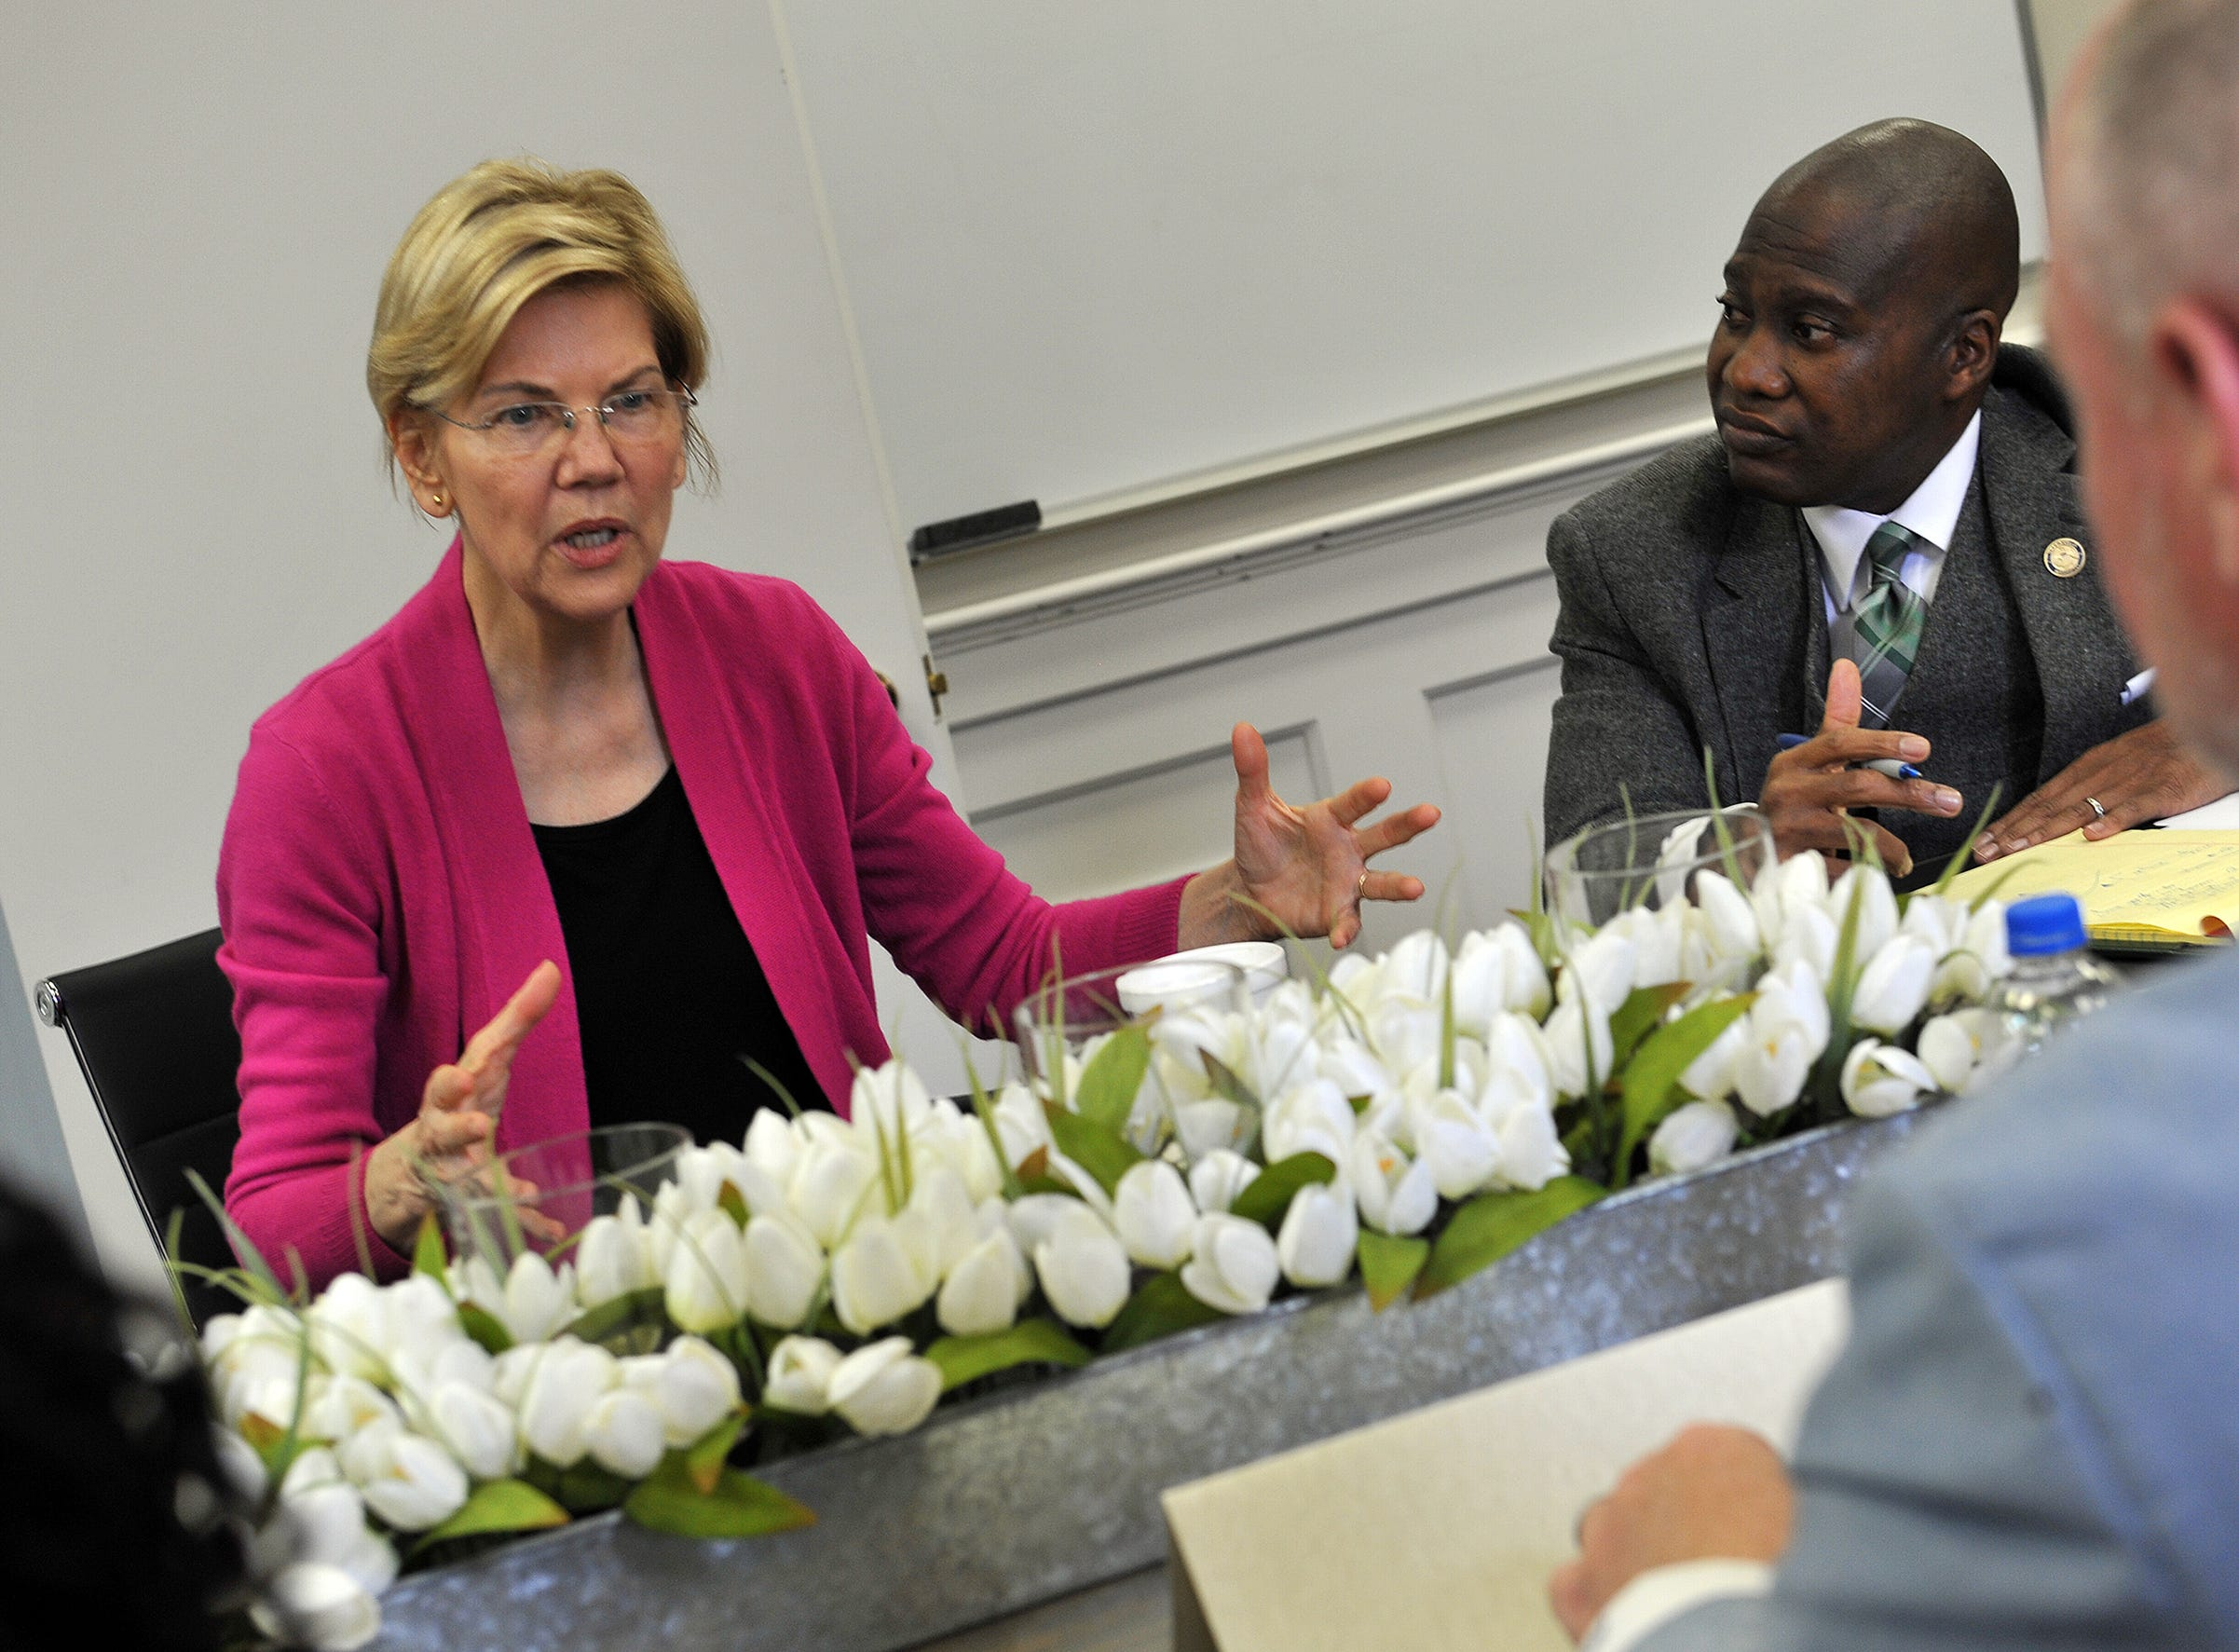 Presidential candidate Sen. Elizabeth Warren, D-Mass., from left, Mayor Erick Simmons, and Daniel Boggs, CEO of the Greater Greenville Housing & Revitalization Association, discuss the affordable housing shortage in the city during her visit to Greenville Monday, March 18, 2019. Greenville was a stop on Sen. Warren's a three-state Southern tour.